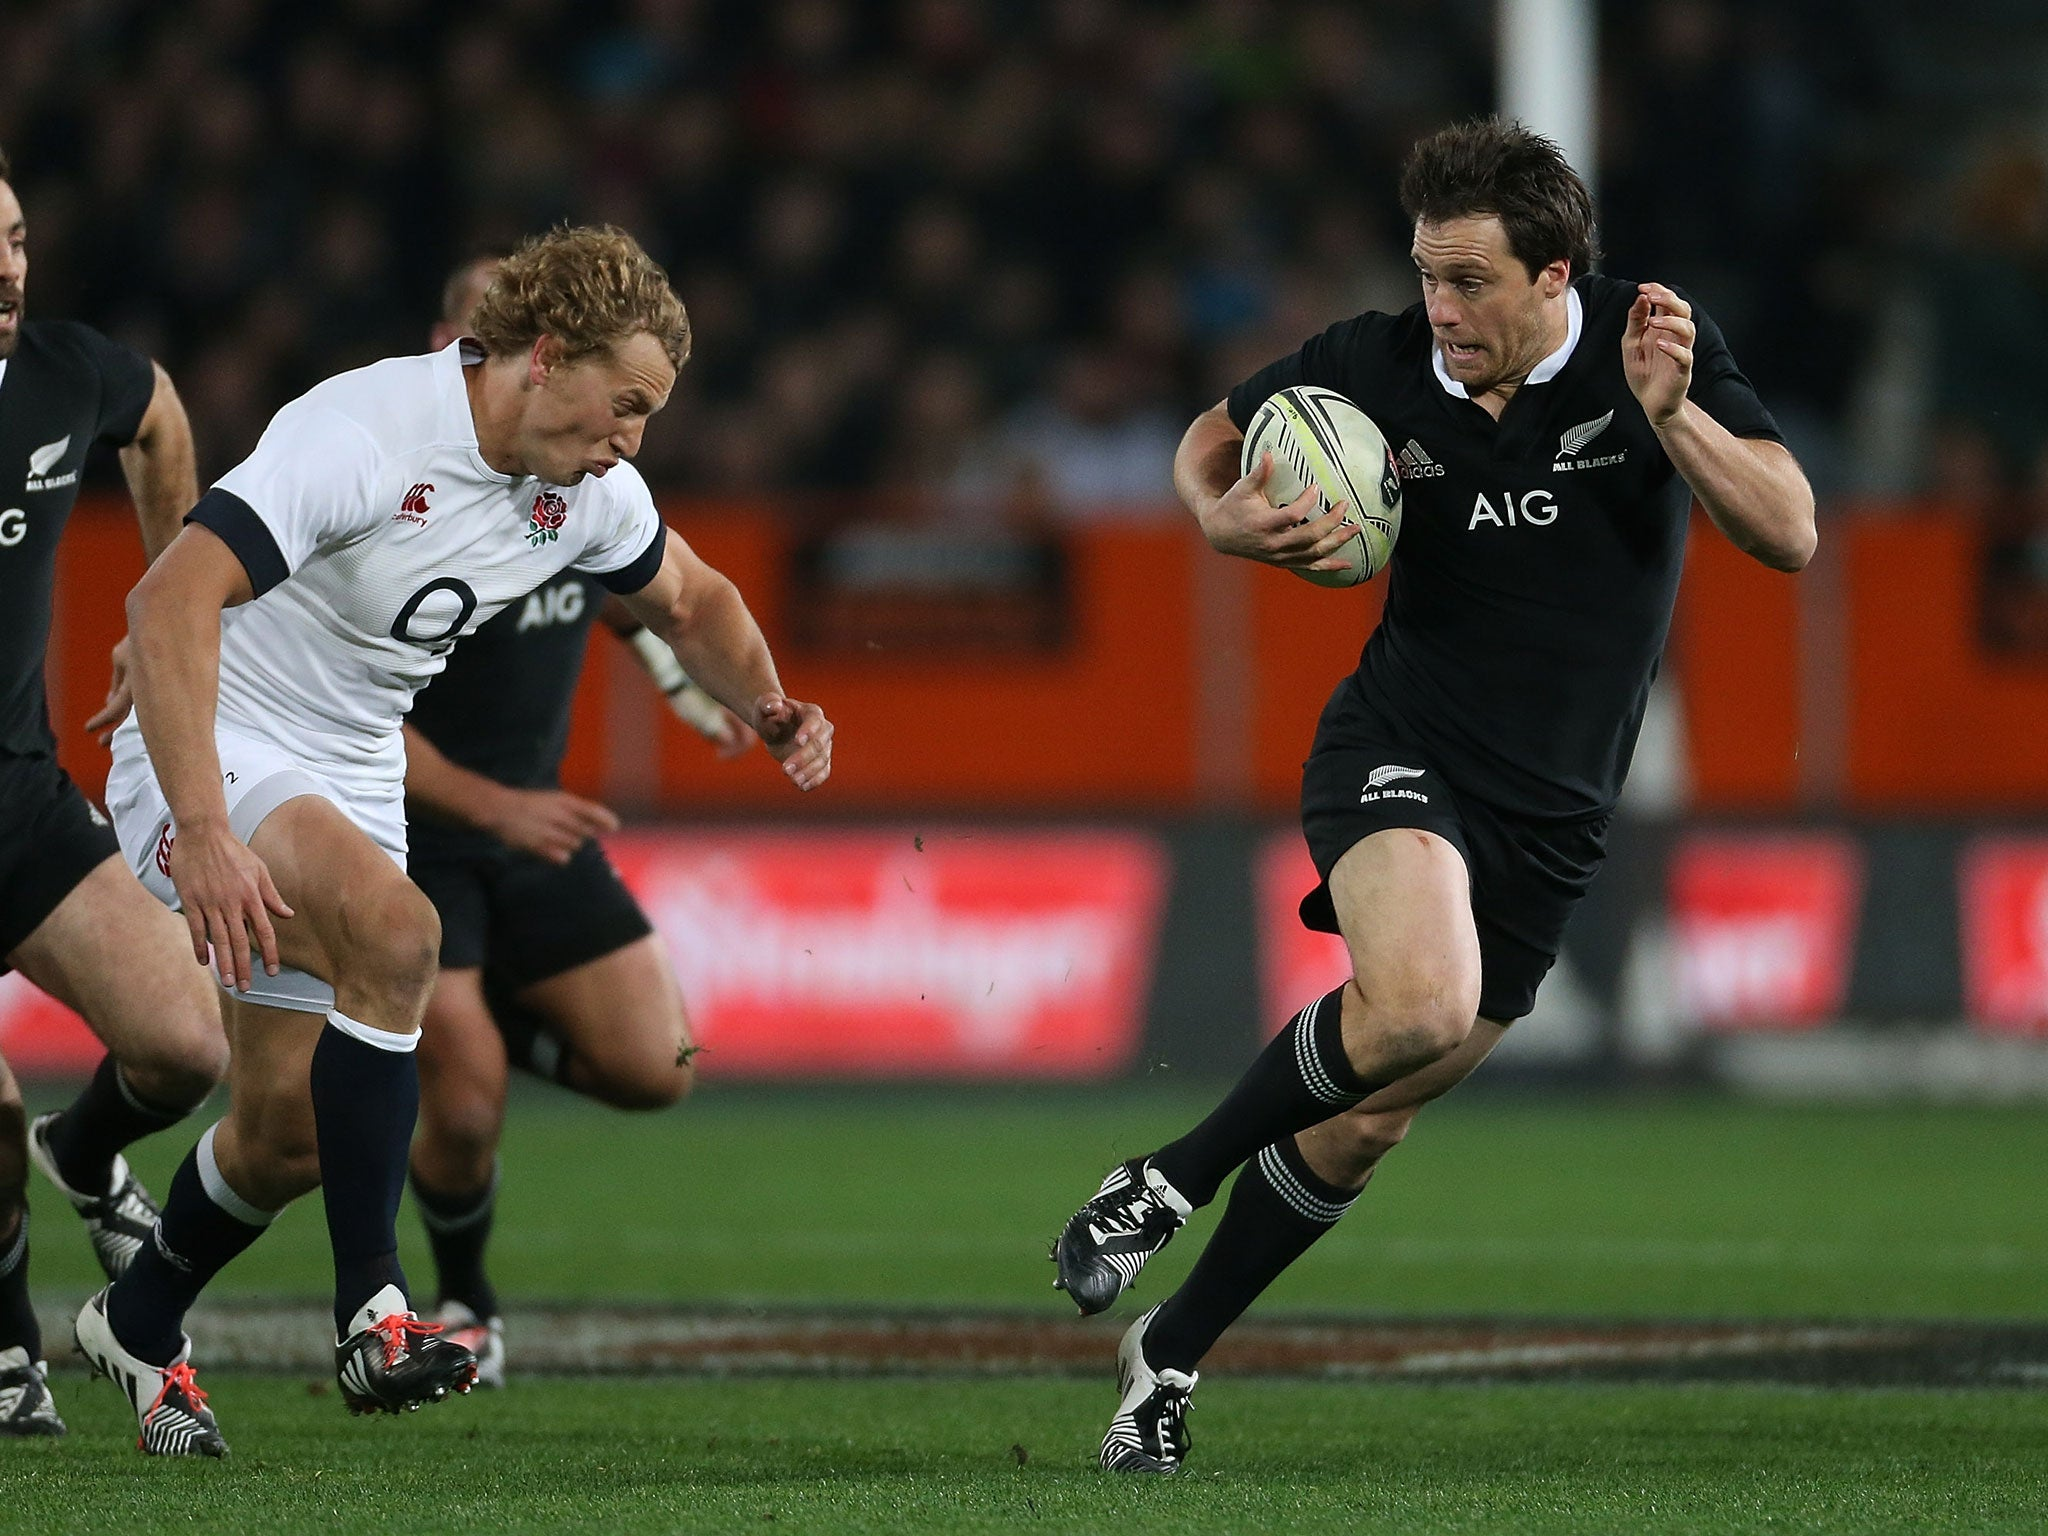 New Zealand 28 England 27: All Blacks' masterful success is a matter